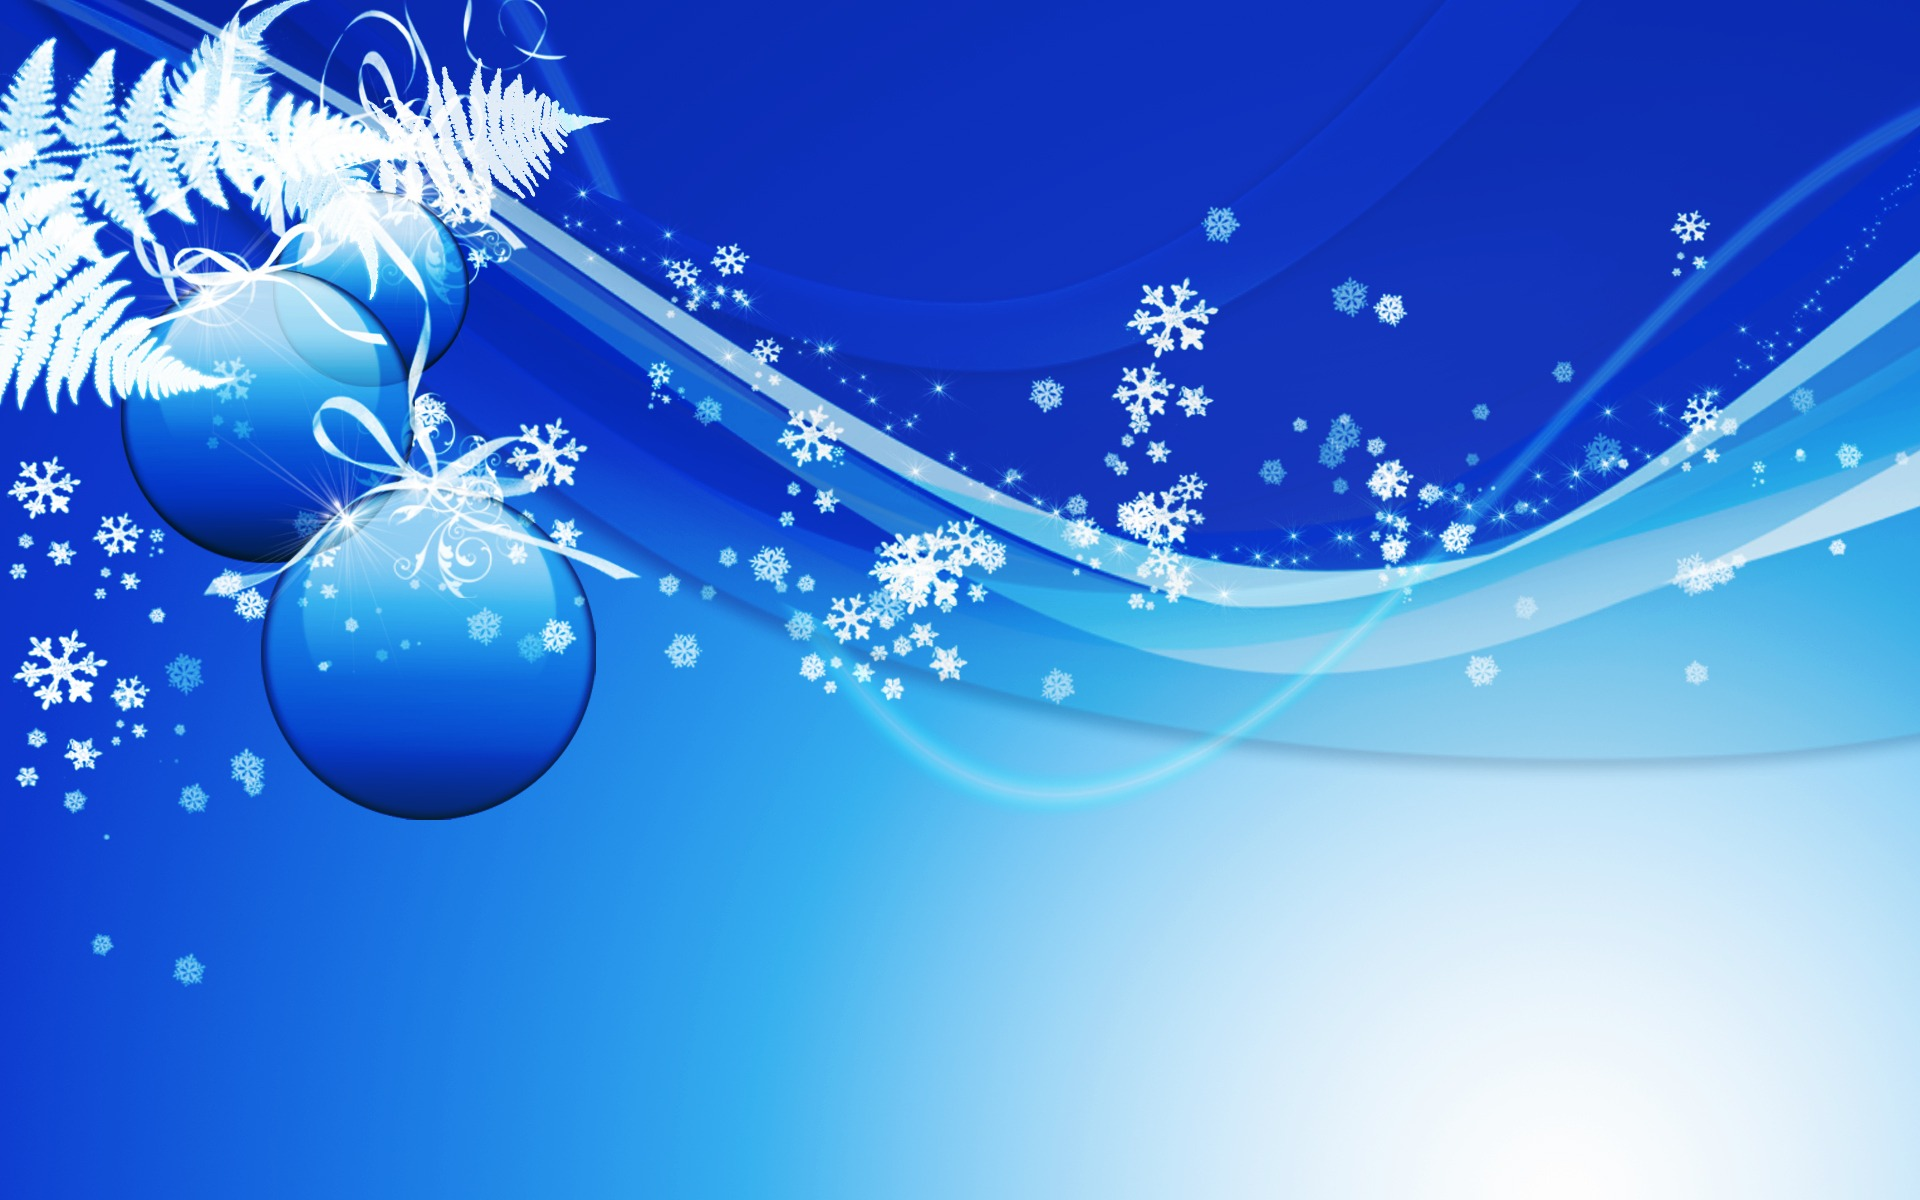 Blue Christmas Wallpaper 4385